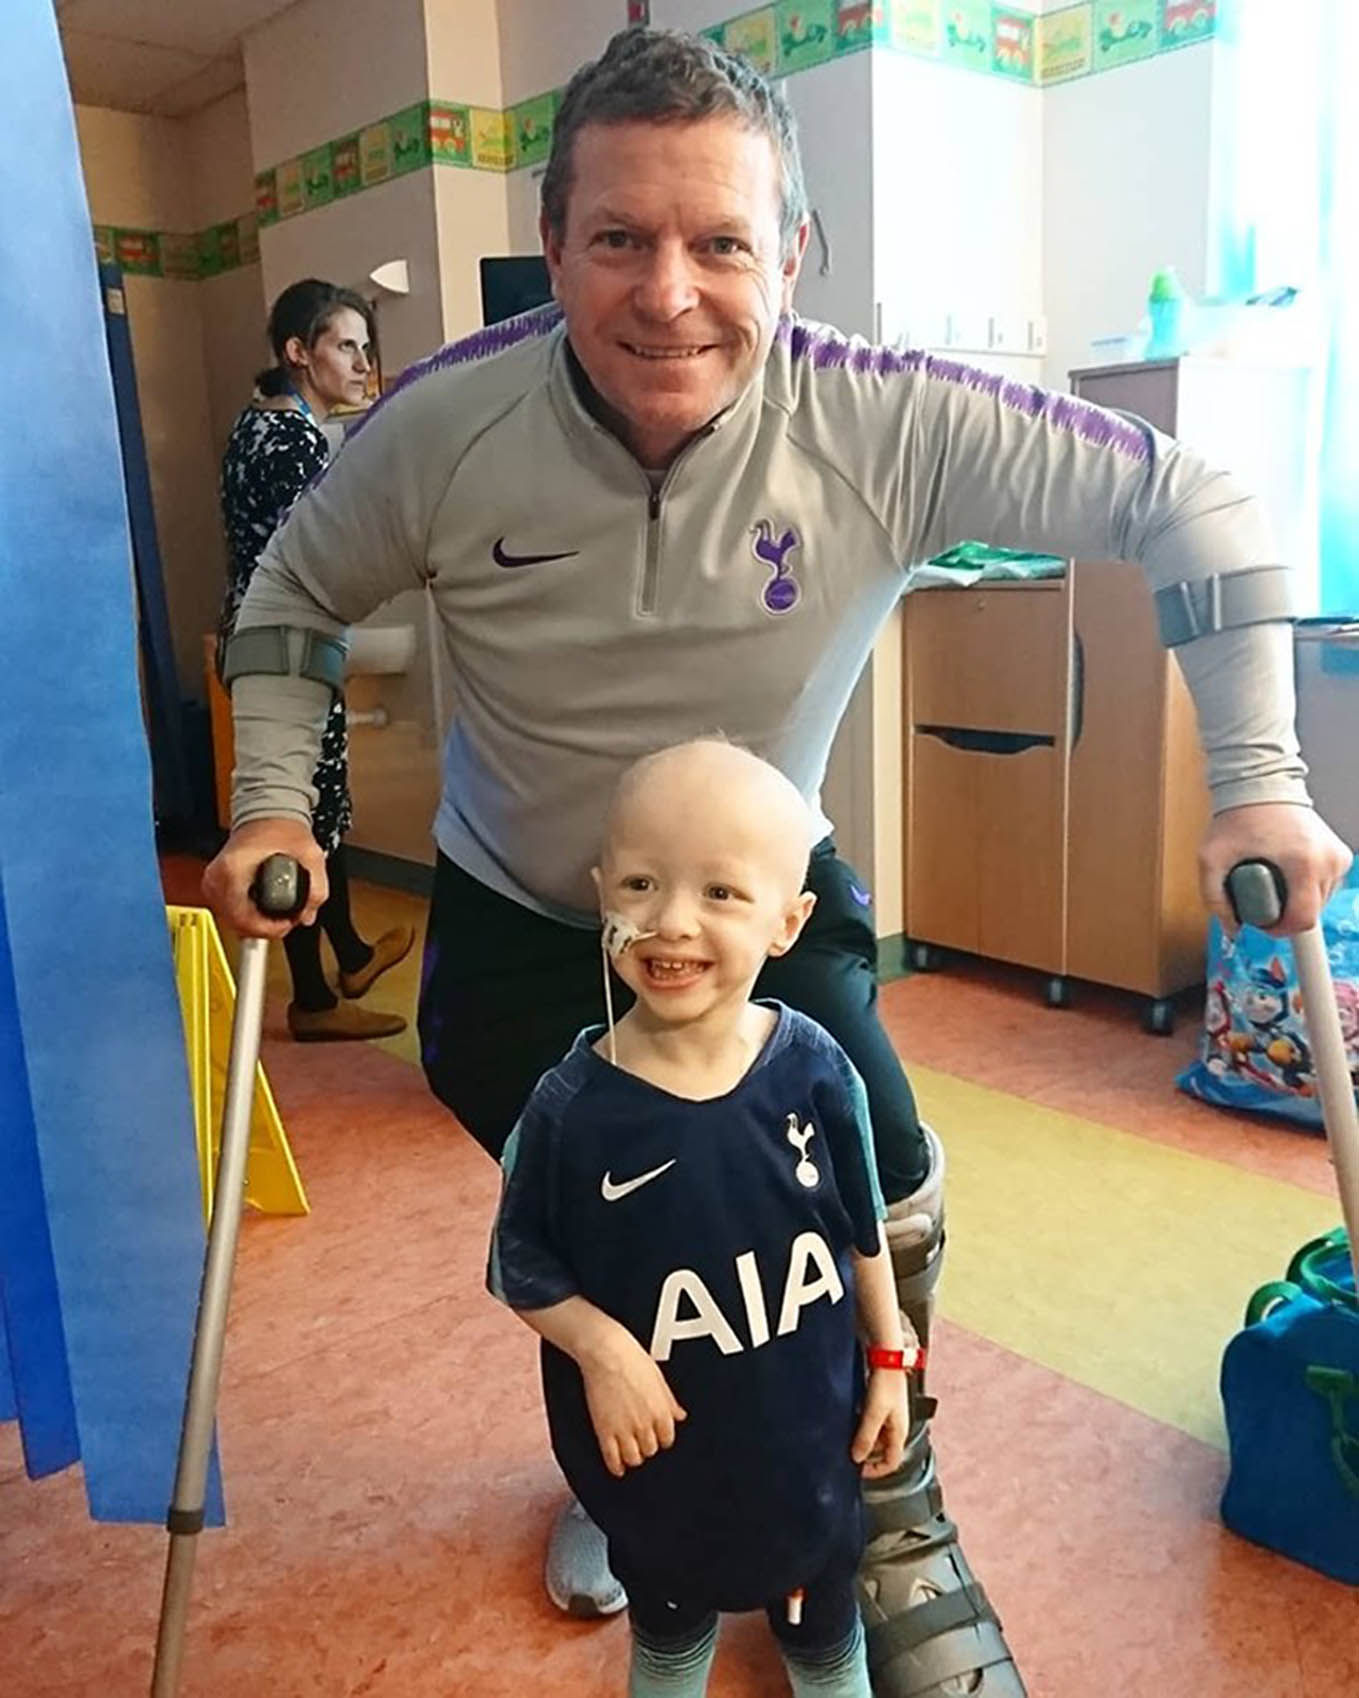 Archie is a Spurs fan who was excited to meet former player Micky Hazard